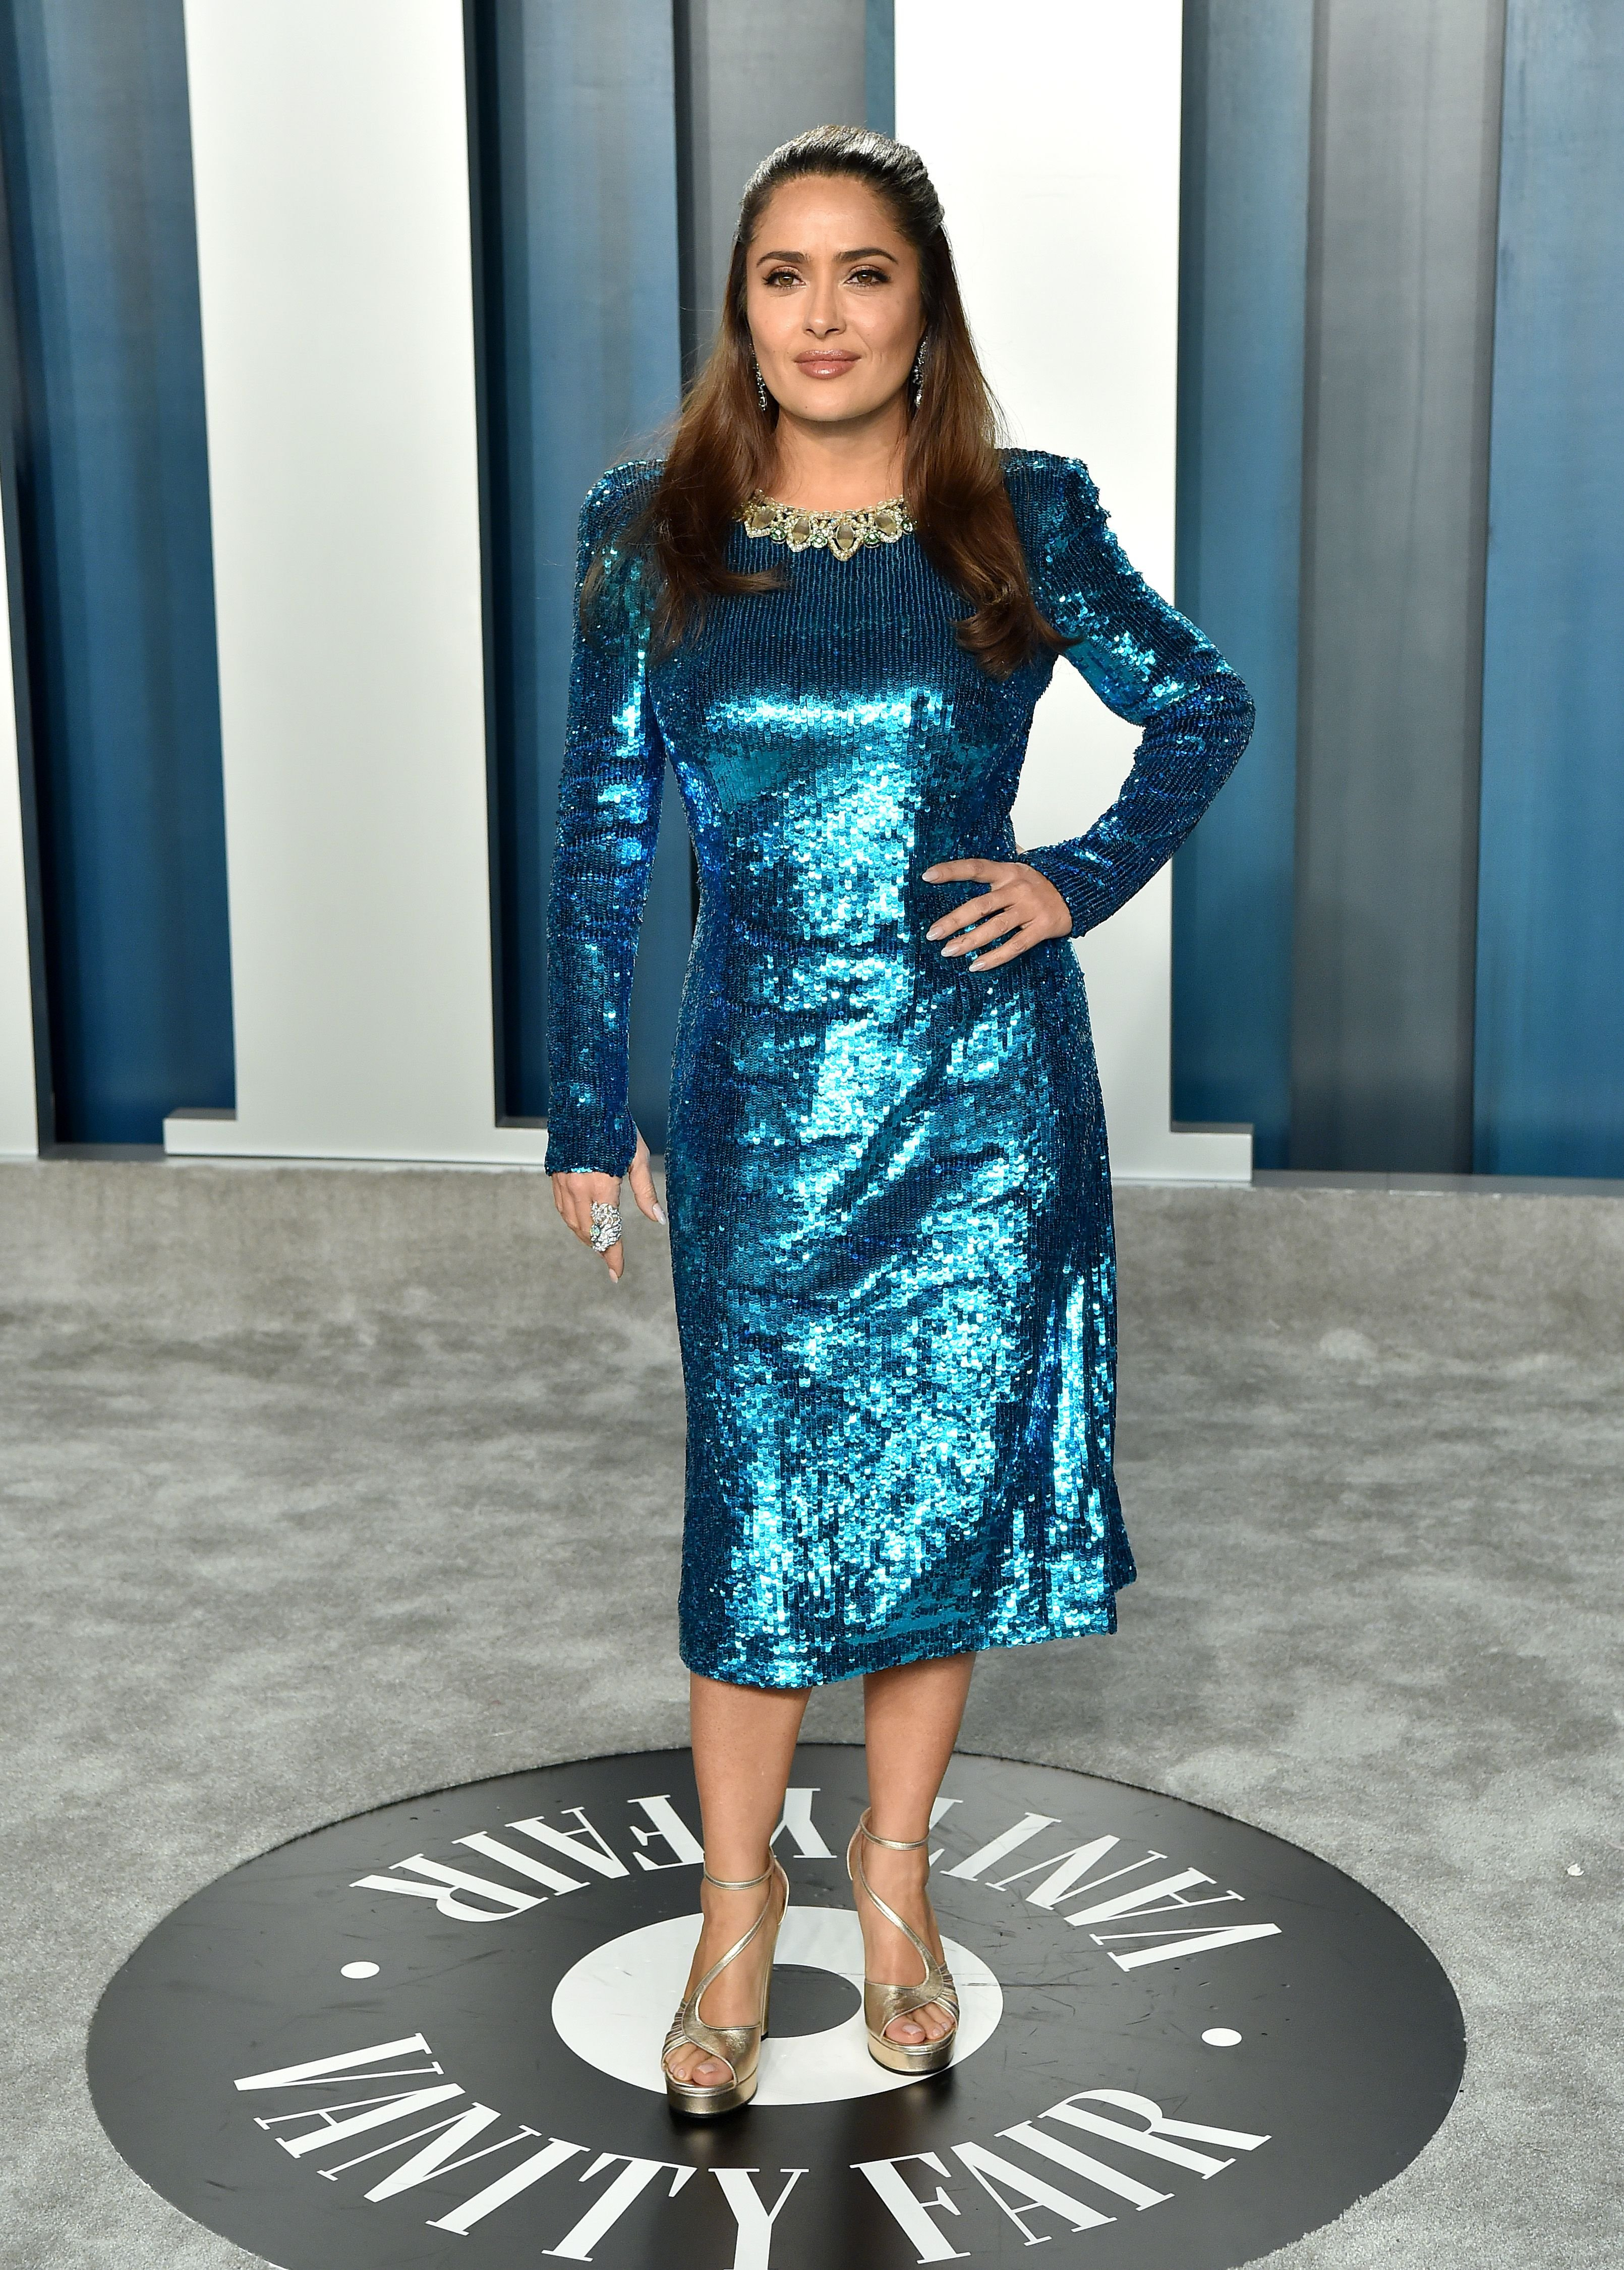 Salma Hayek at the 2020 Vanity Fair Oscar Party at Wallis Annenberg Center for the Performing Arts on February 09, 2020 | Photo: Getty Images